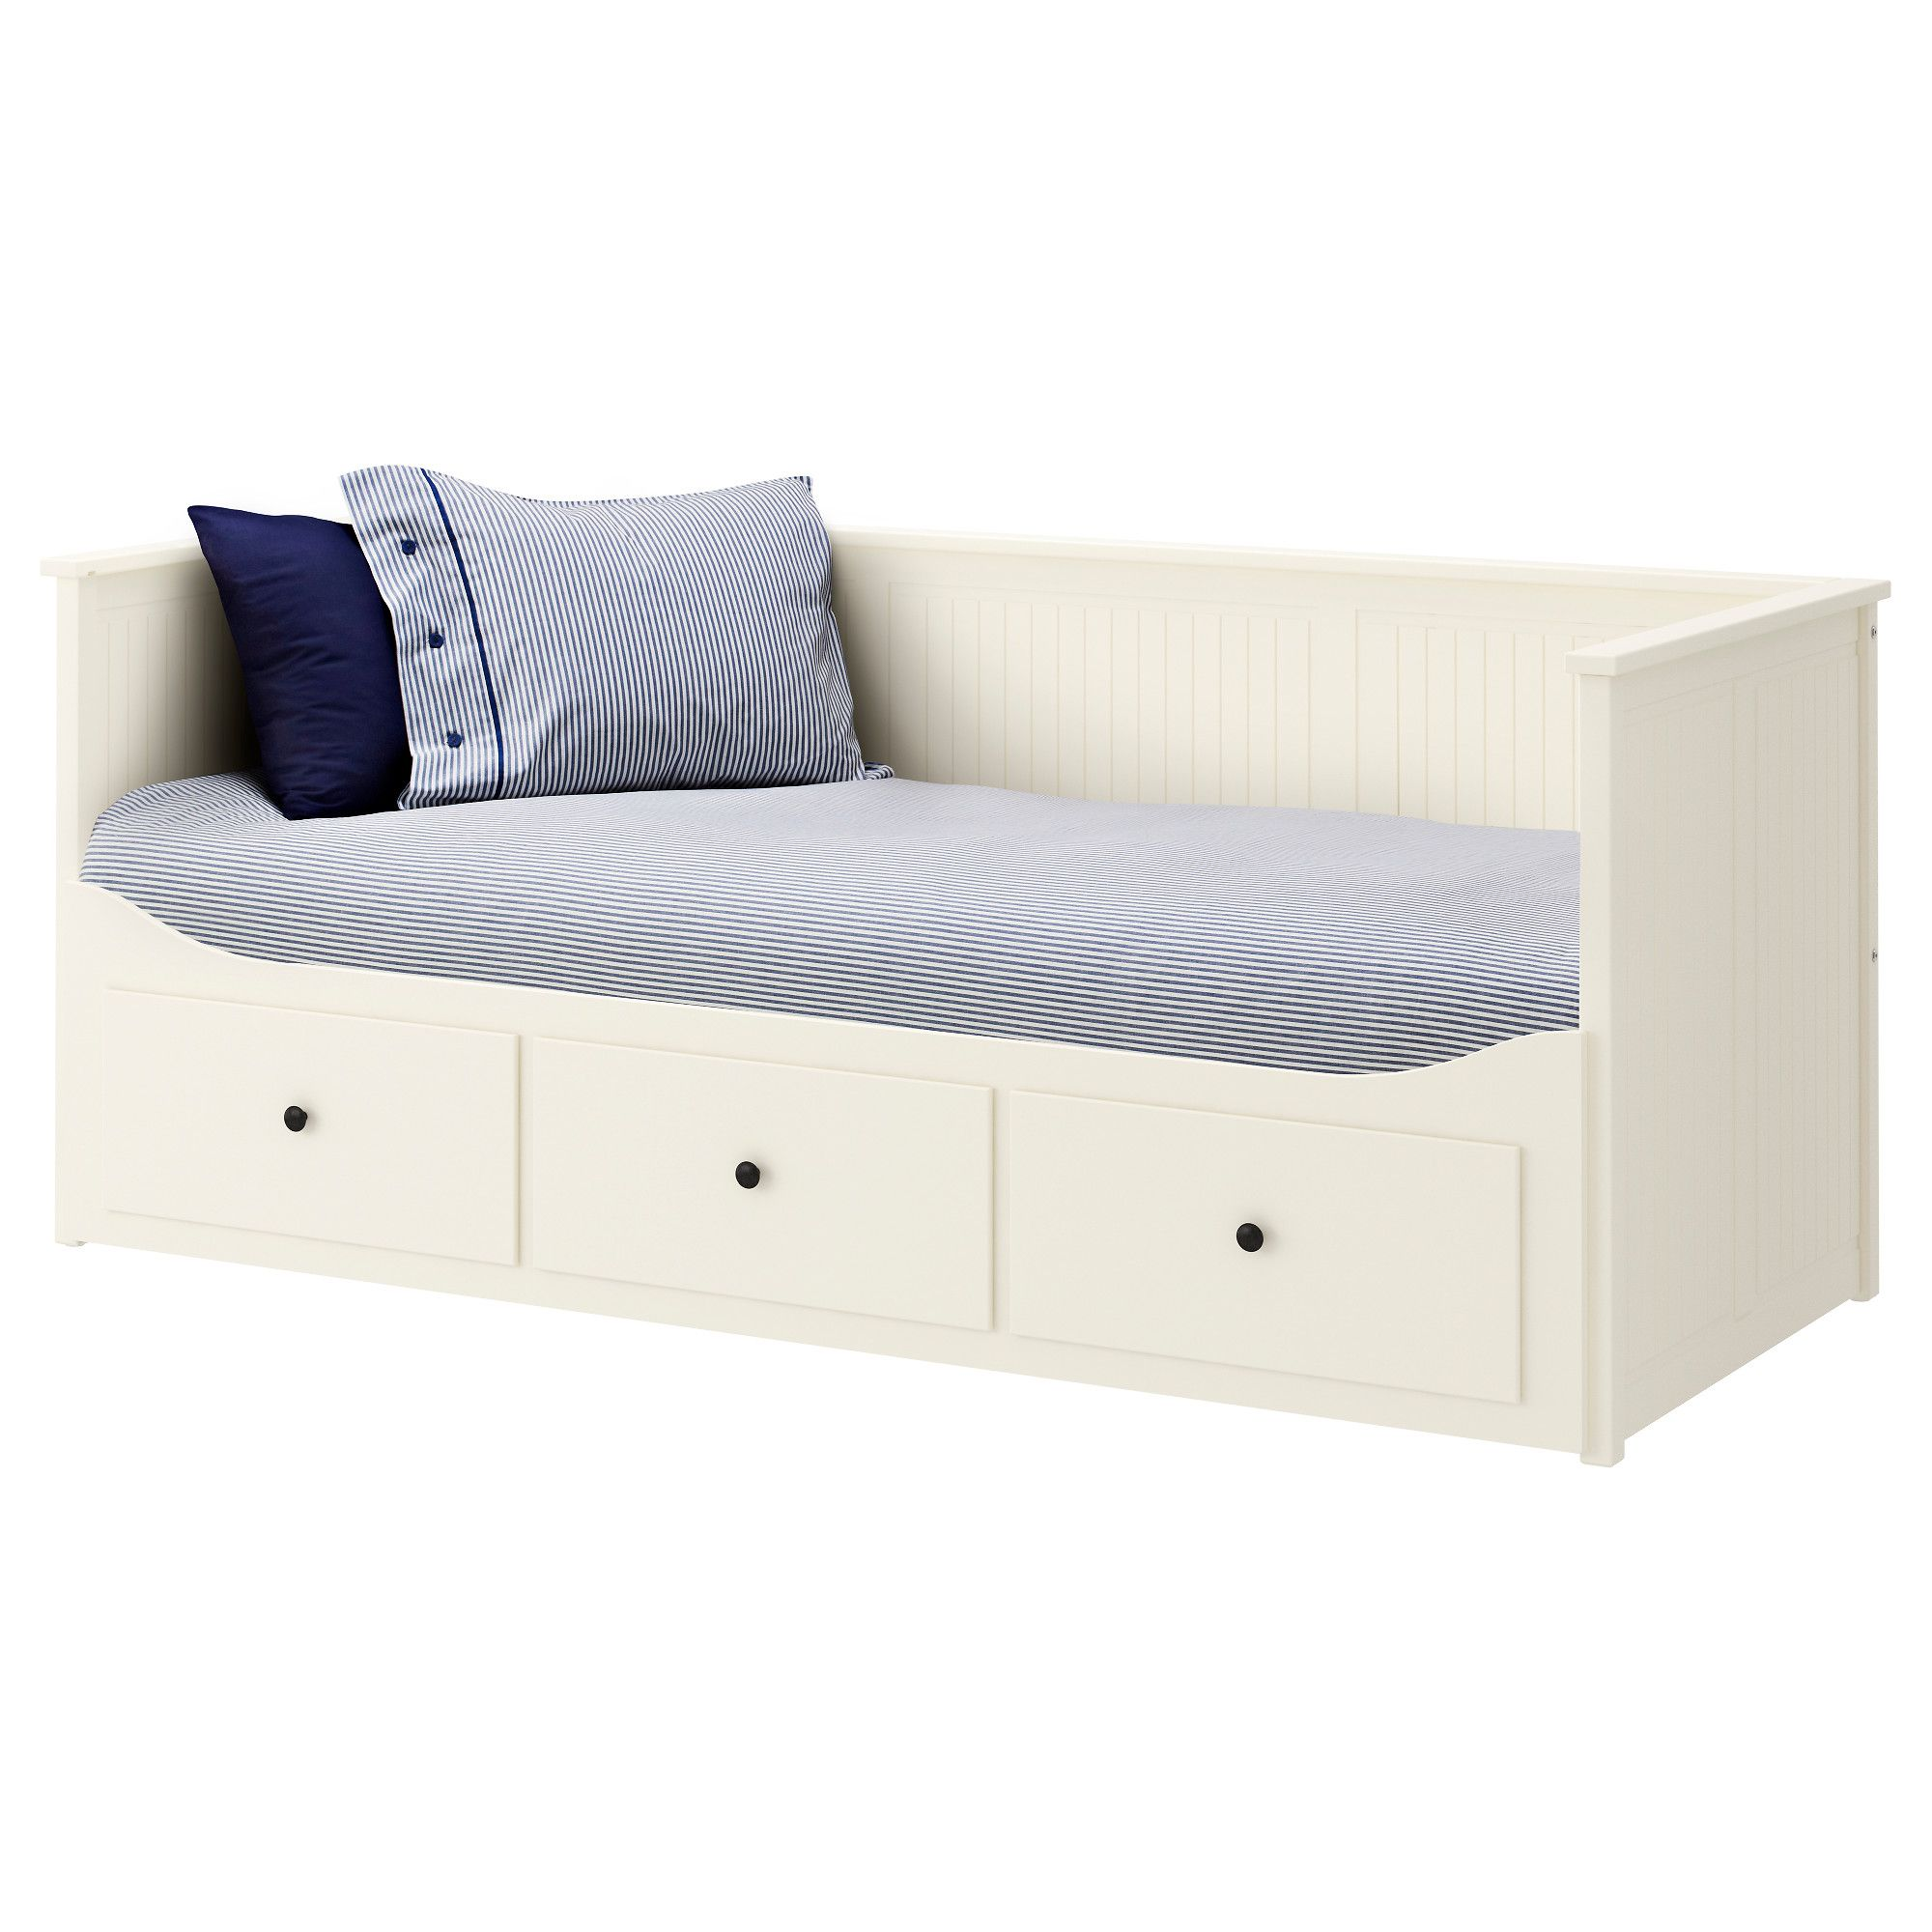 Coole Dekoration Ikea Sofa Bett #21: Home Furnishings, Kitchens, Appliances, Sofas, Beds, Mattresses - IKEA